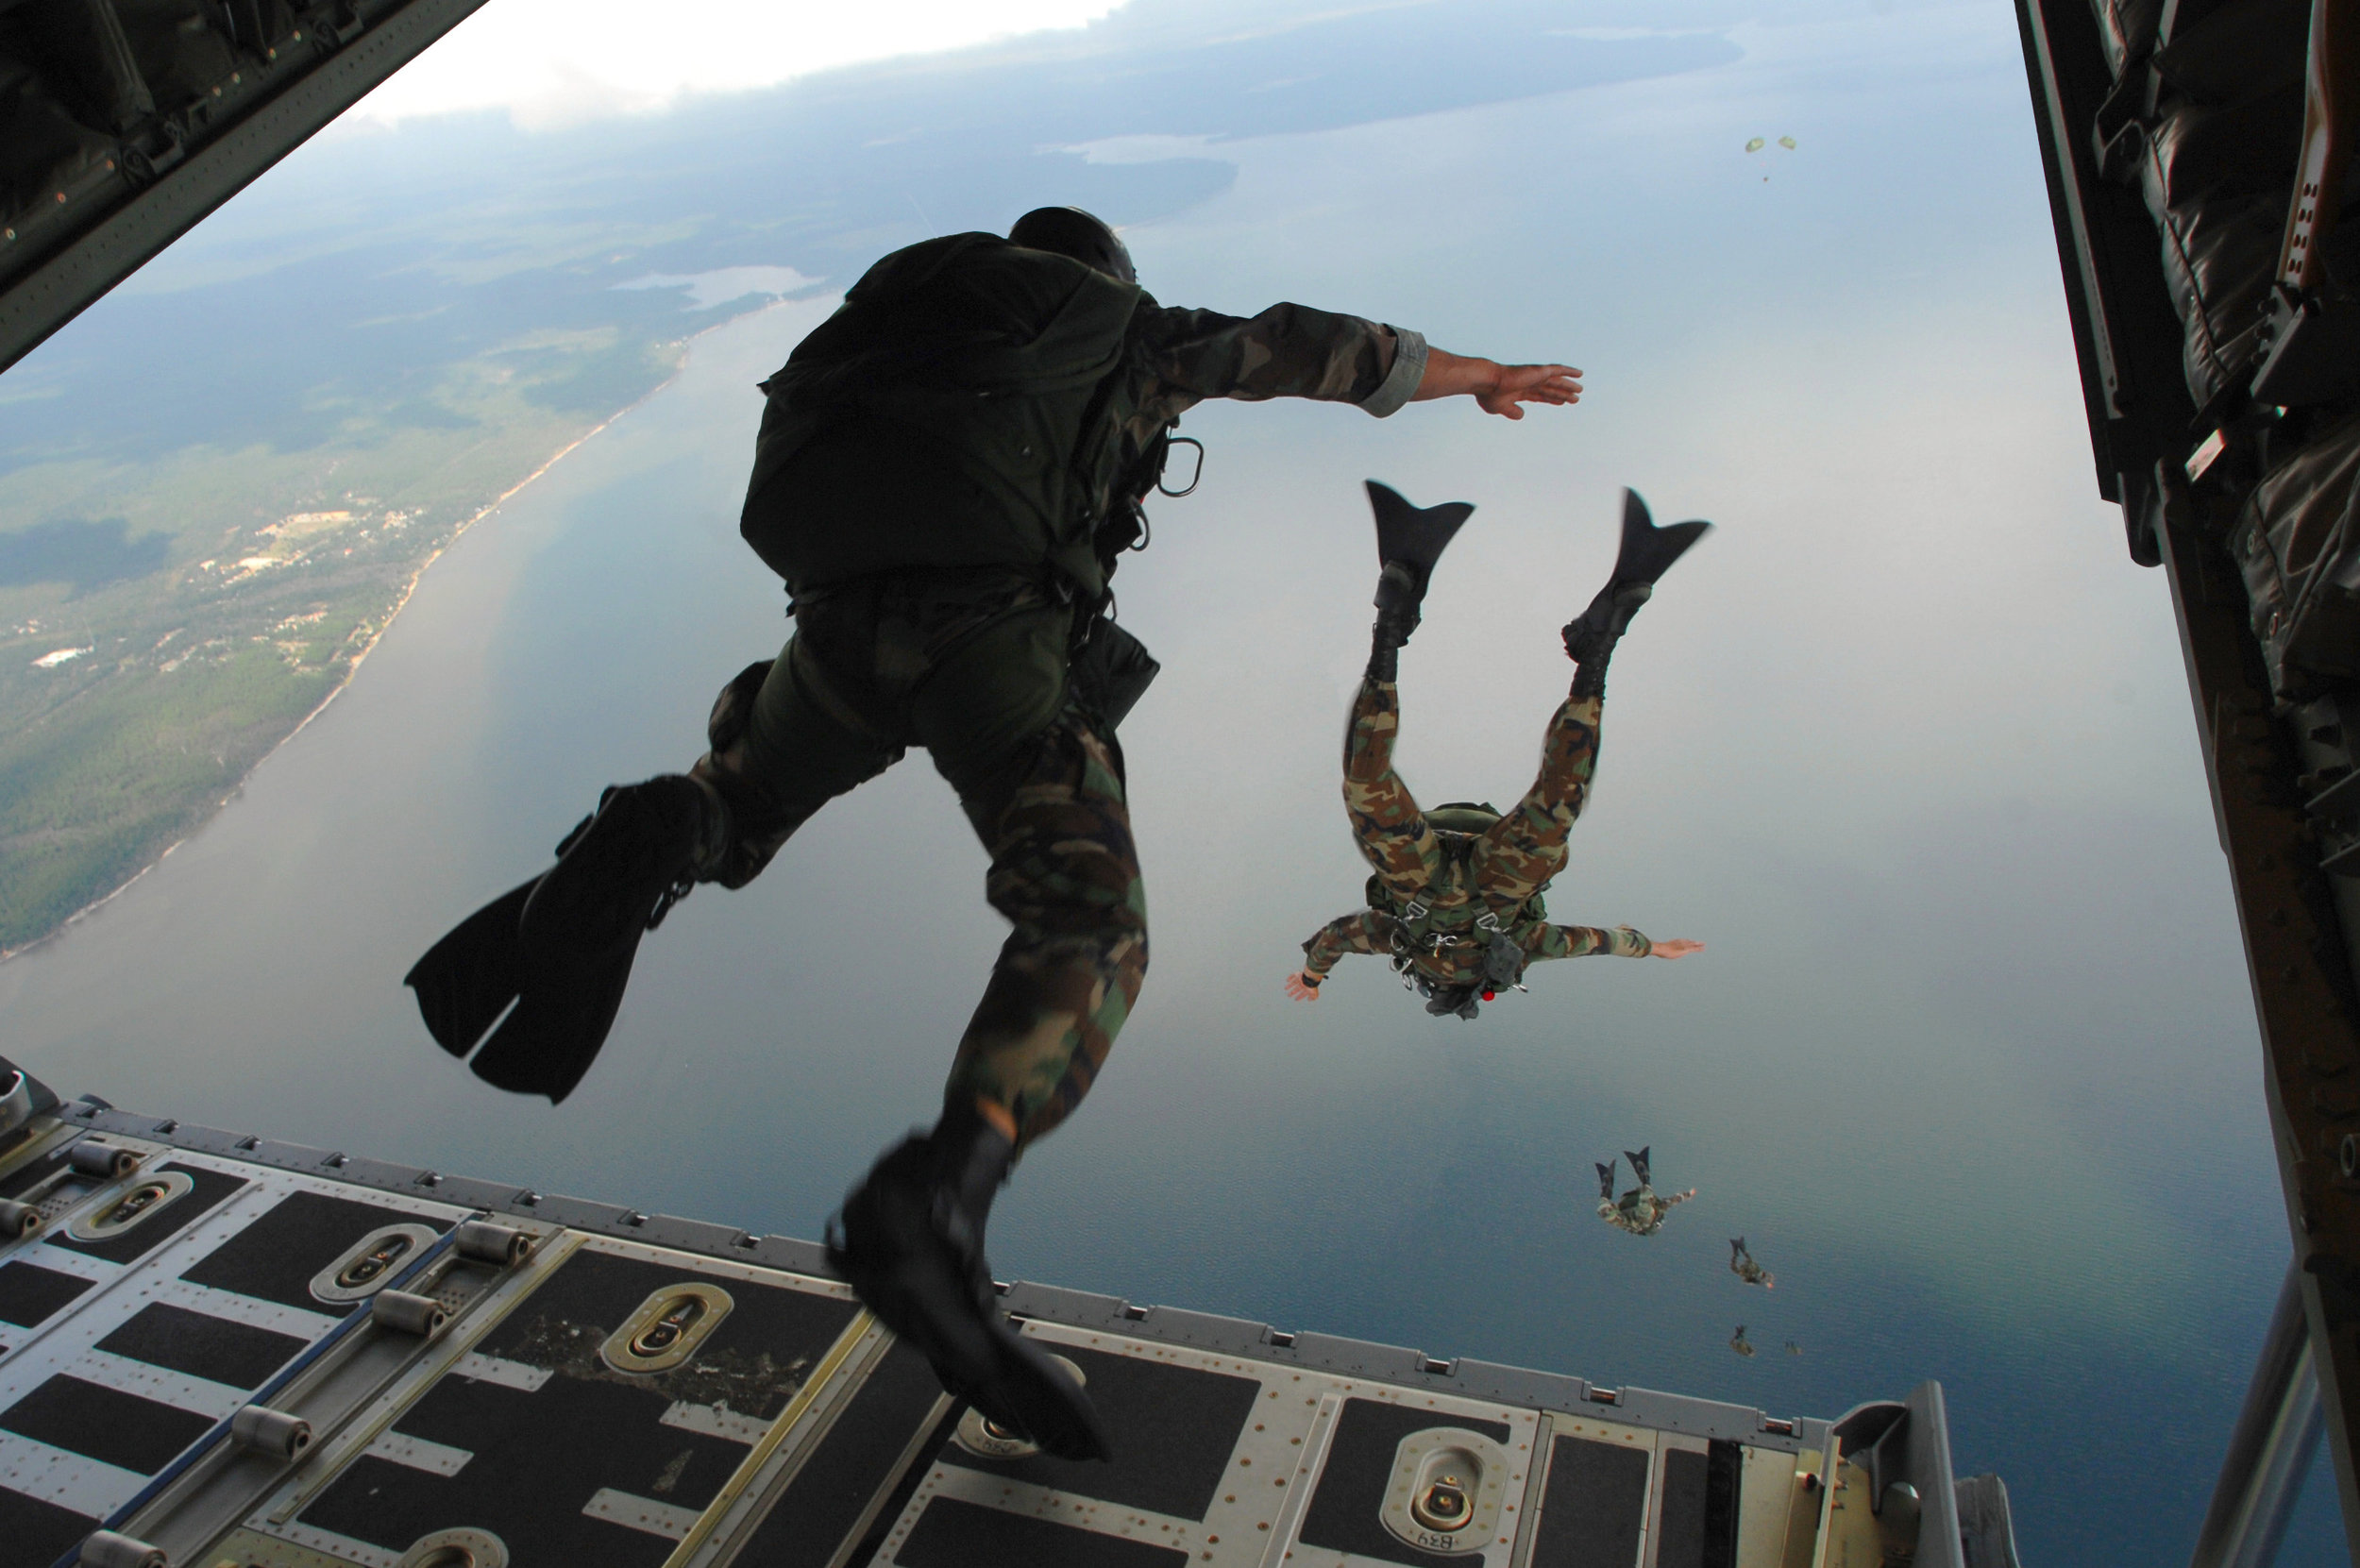 copyright_free_720th_Special_Tactics_Group_airmen_jump_20071003.jpg